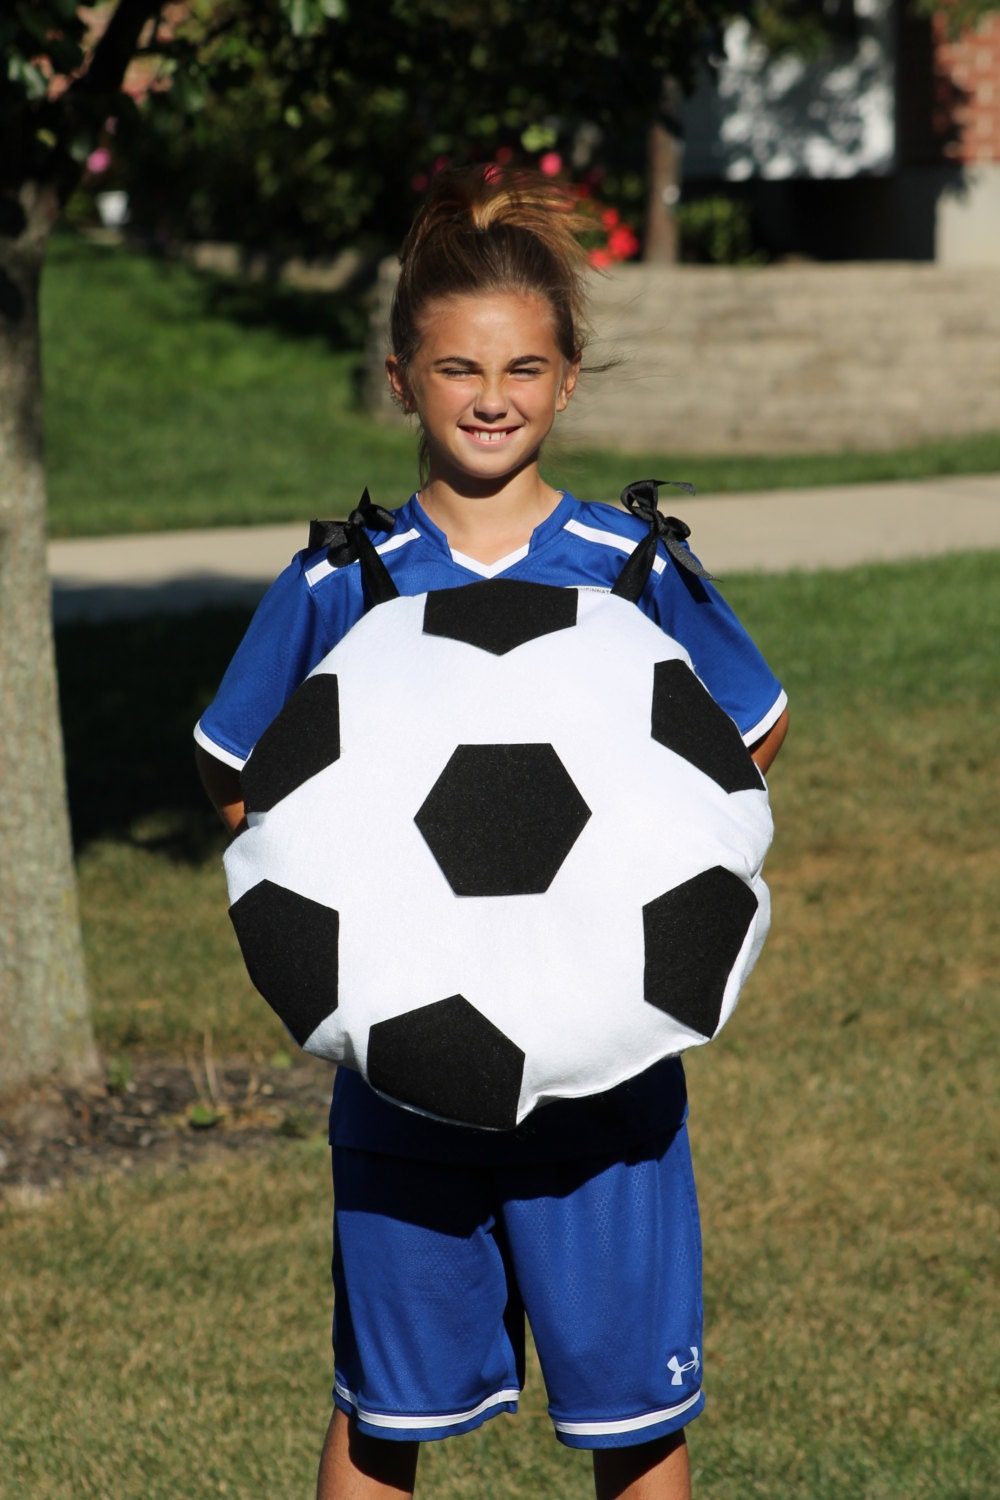 fun halloween costumesoccer ball costume with trick-or-treat | etsy